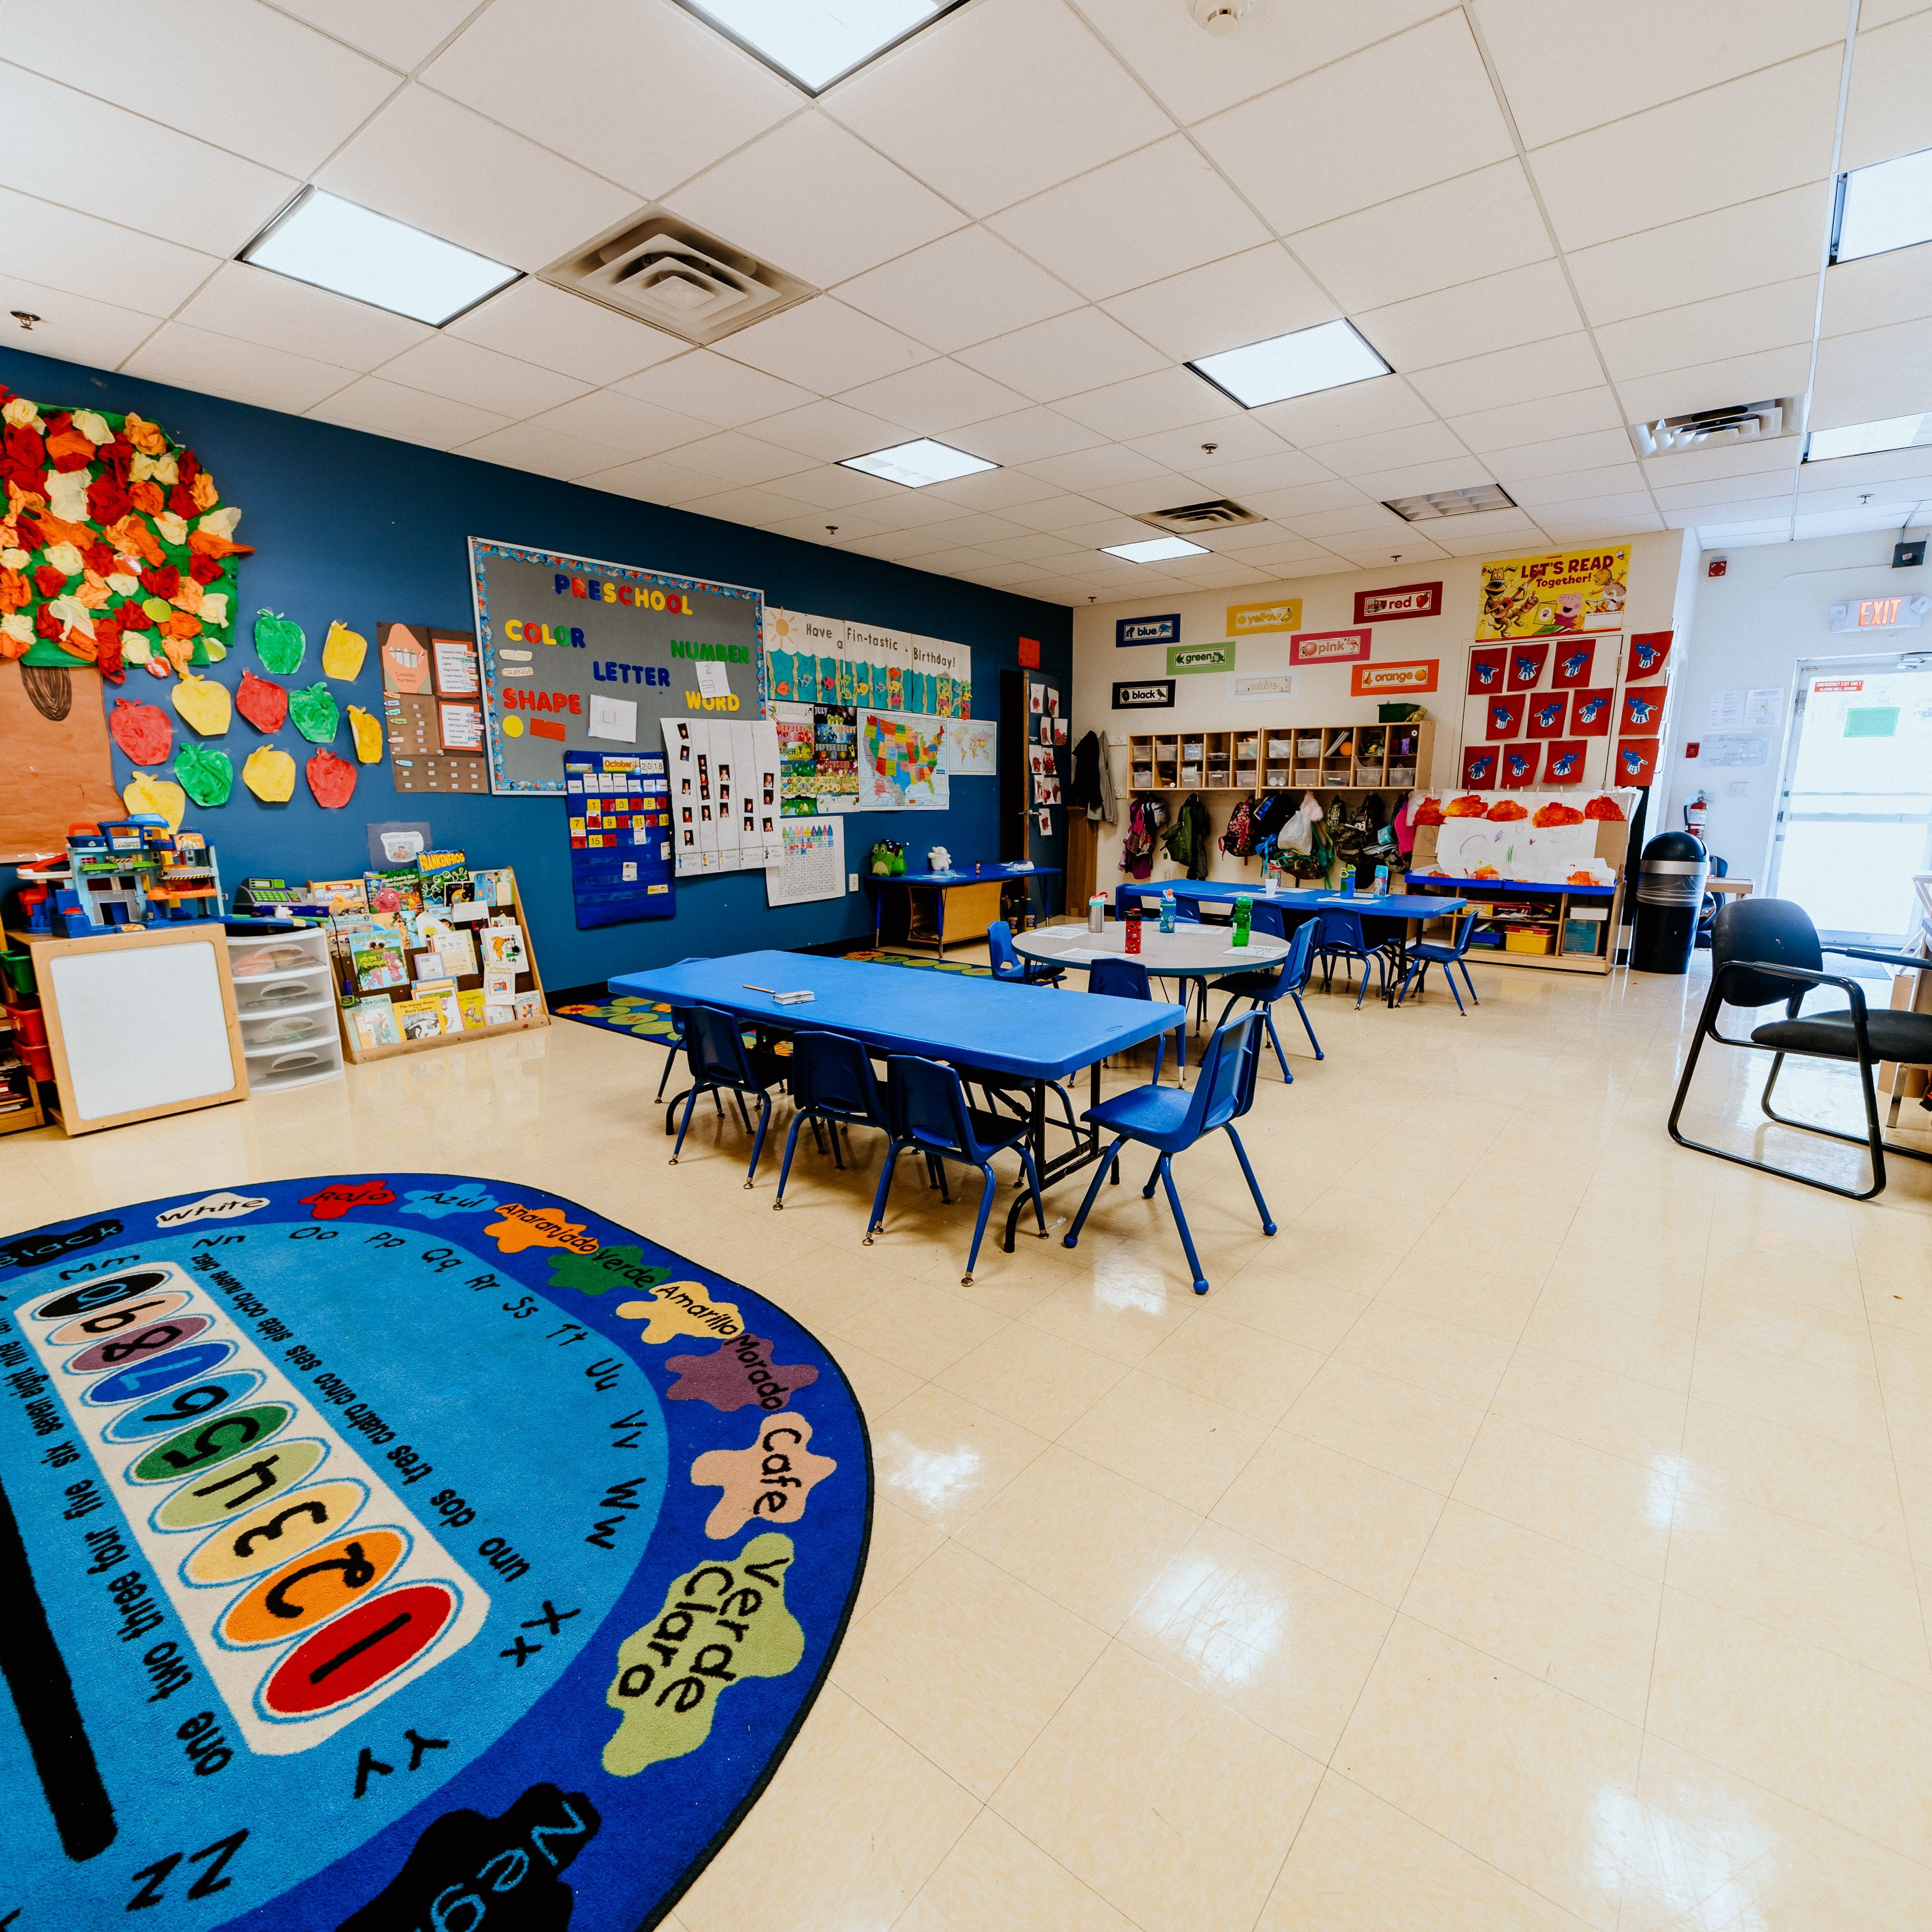 This is a photo of our preschool classroom at Sportsplex